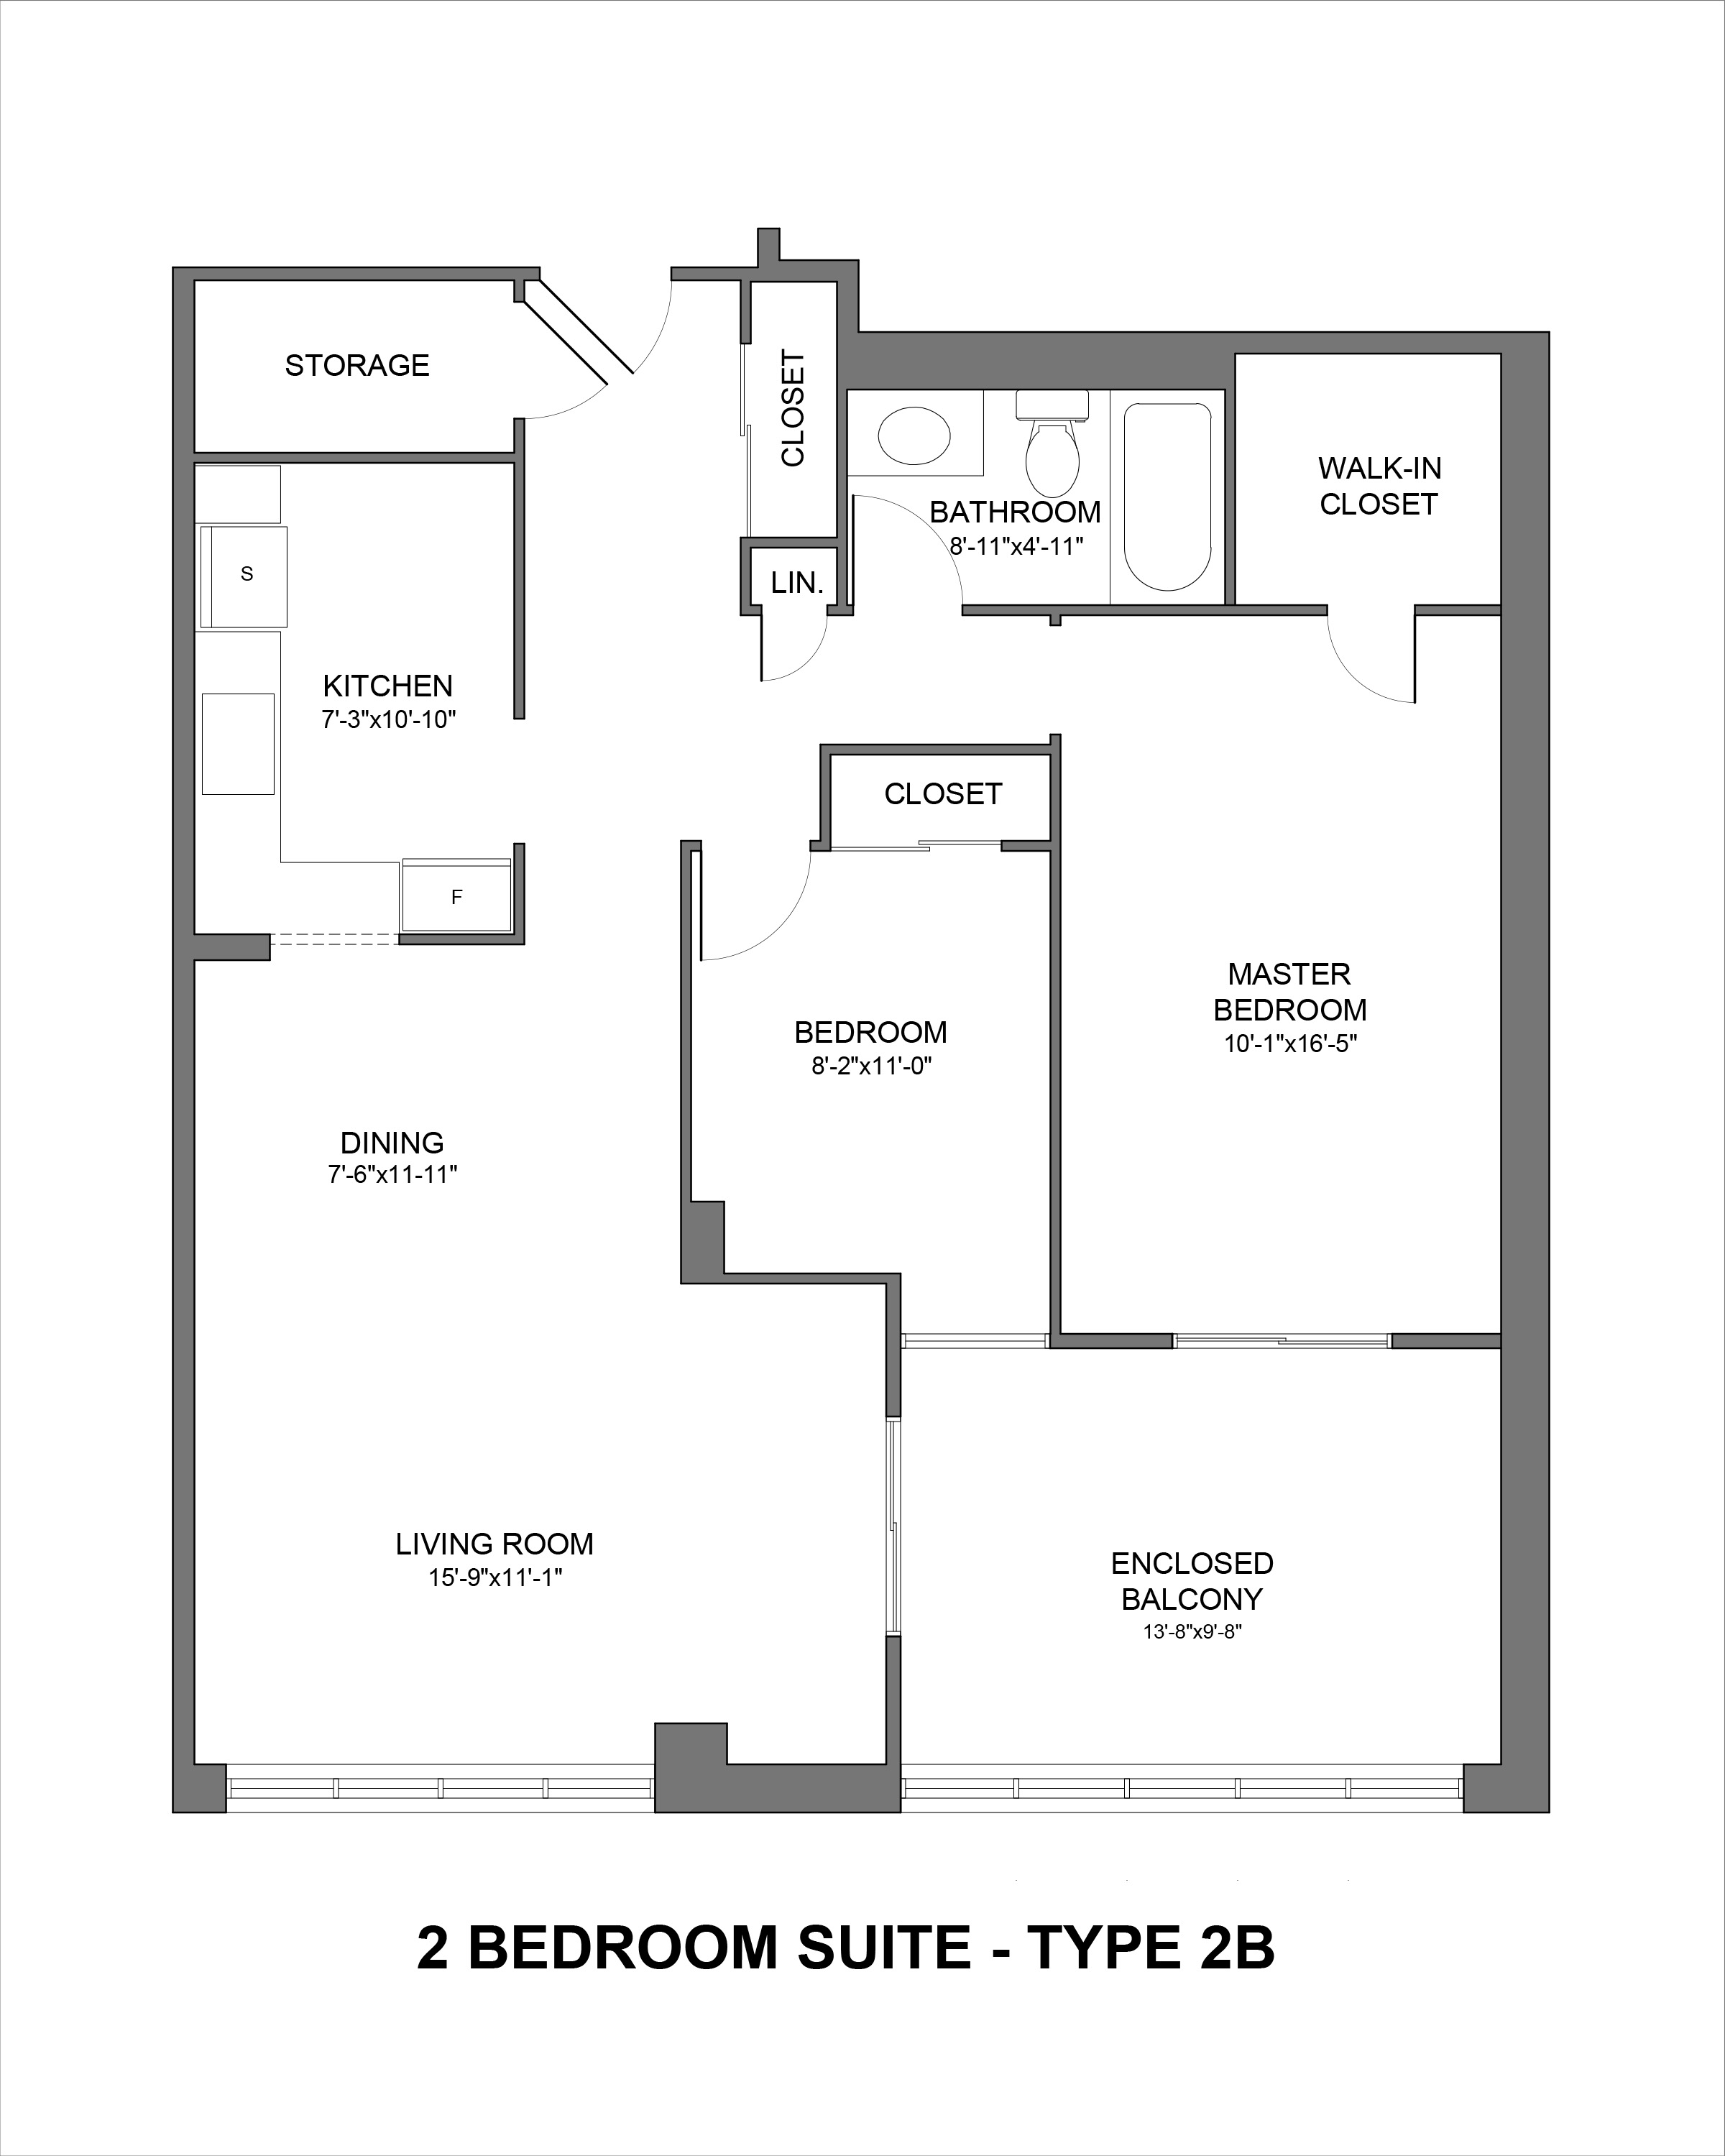 Floorplan for Type 2B 2 bedroom suite